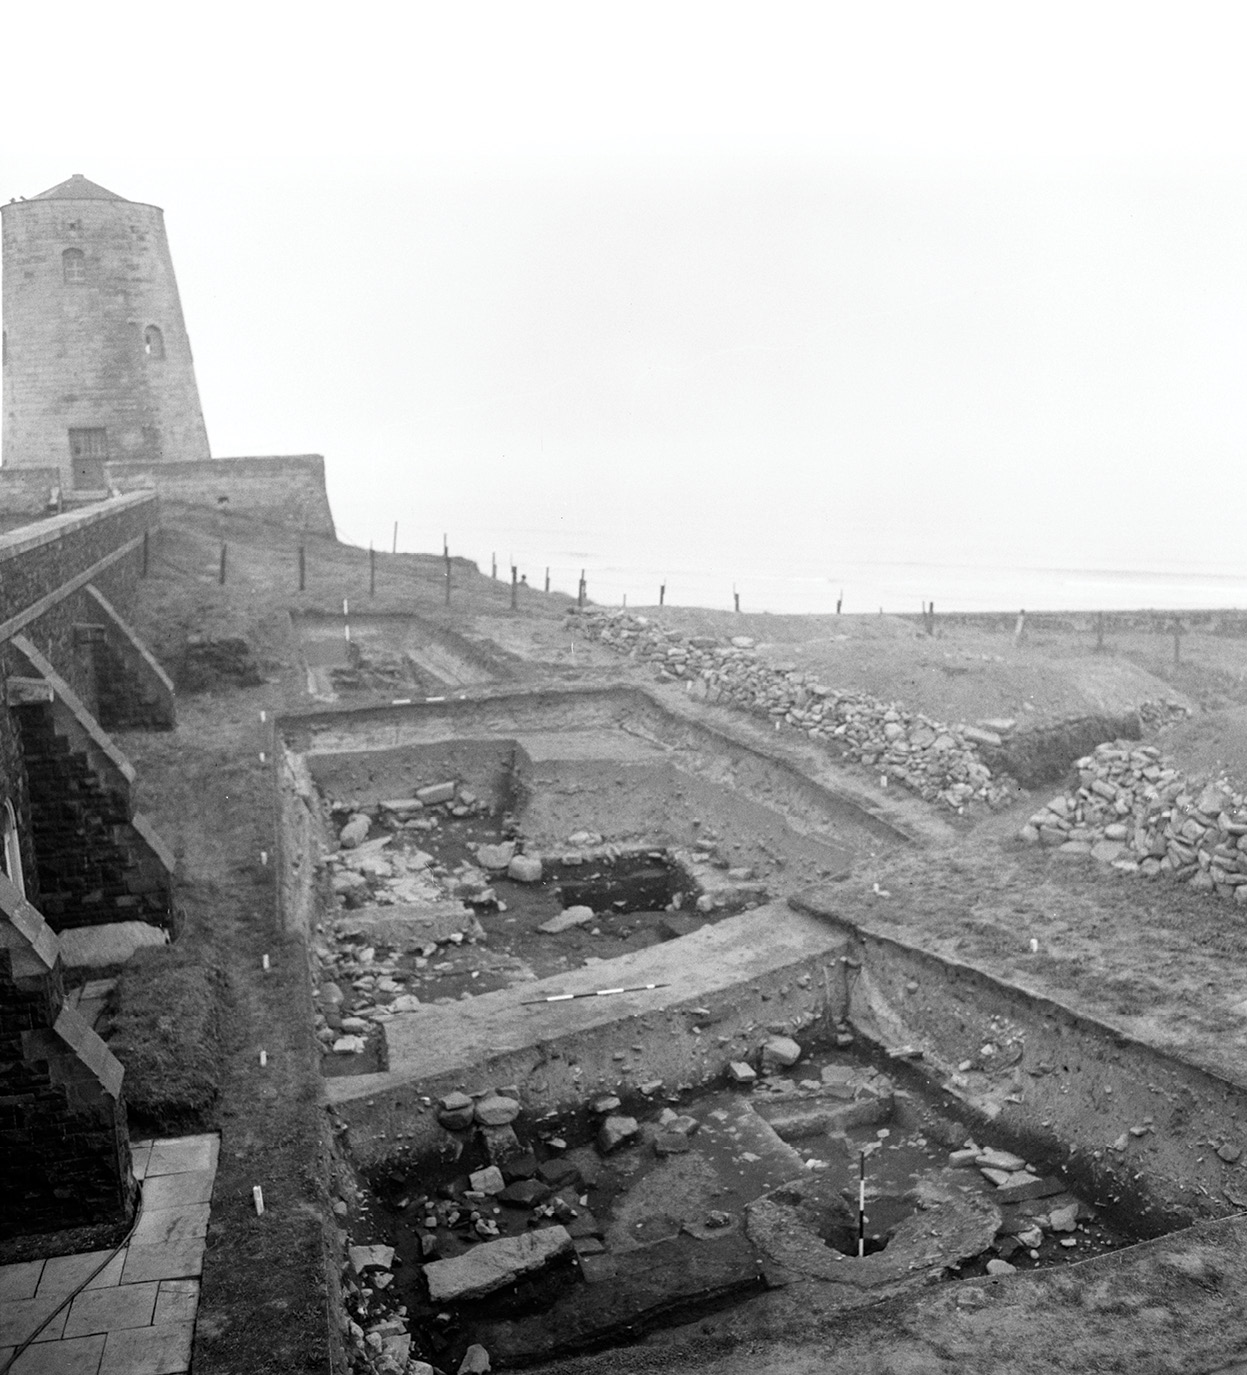 Below Hope-Taylor photograph from the early 1970s of Cutting A, main area divided by a baulk, and Cutting B, the small trench in the background. The mortar mixer is visible towards the bottom of the photograph.